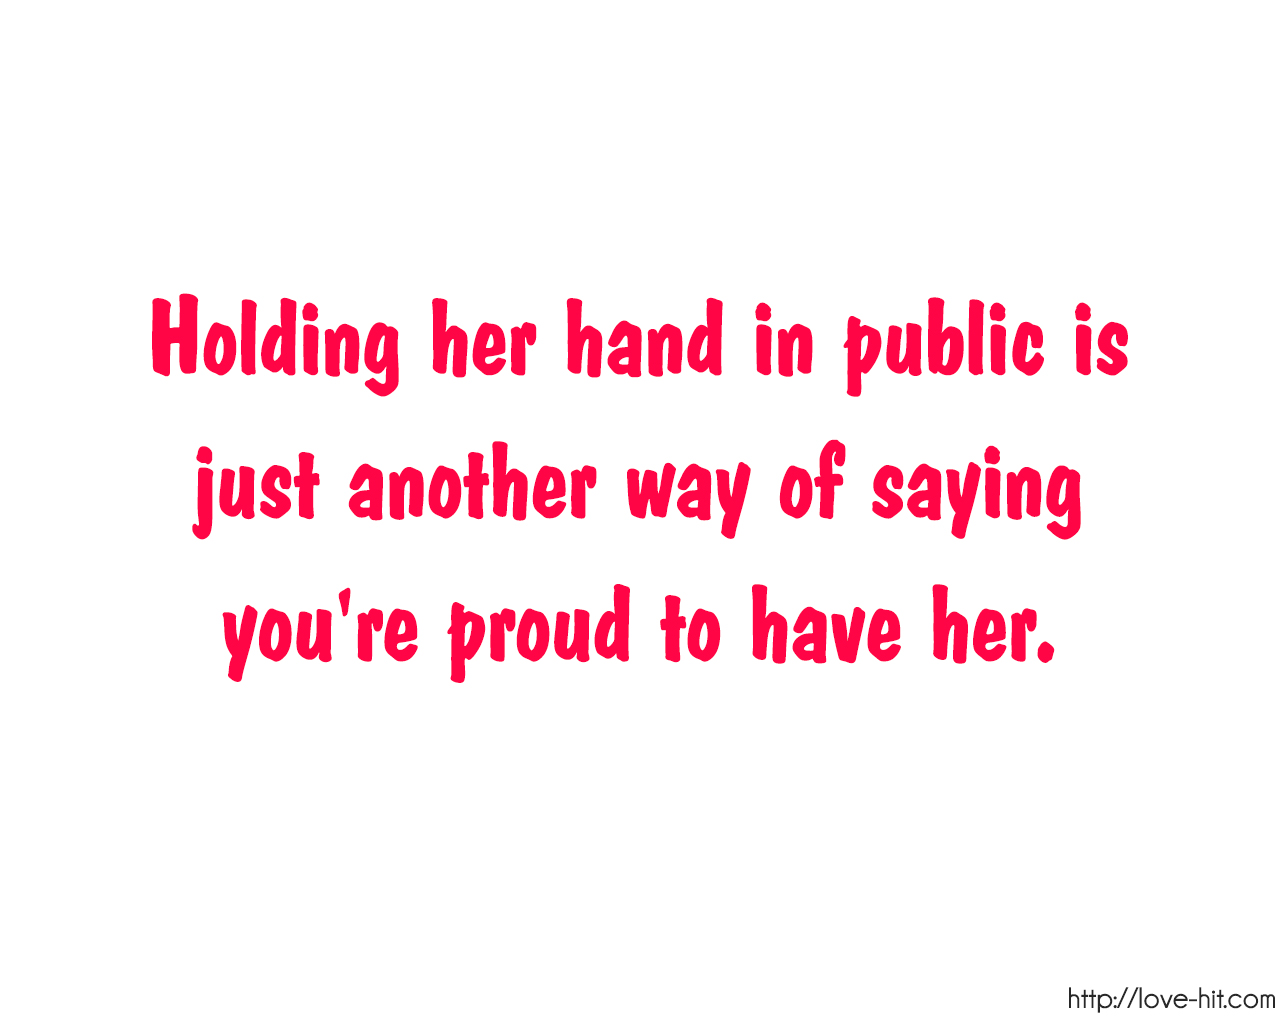 Holding Her Hand In Public Is Just Way Of Saying You're Proud To Have Her